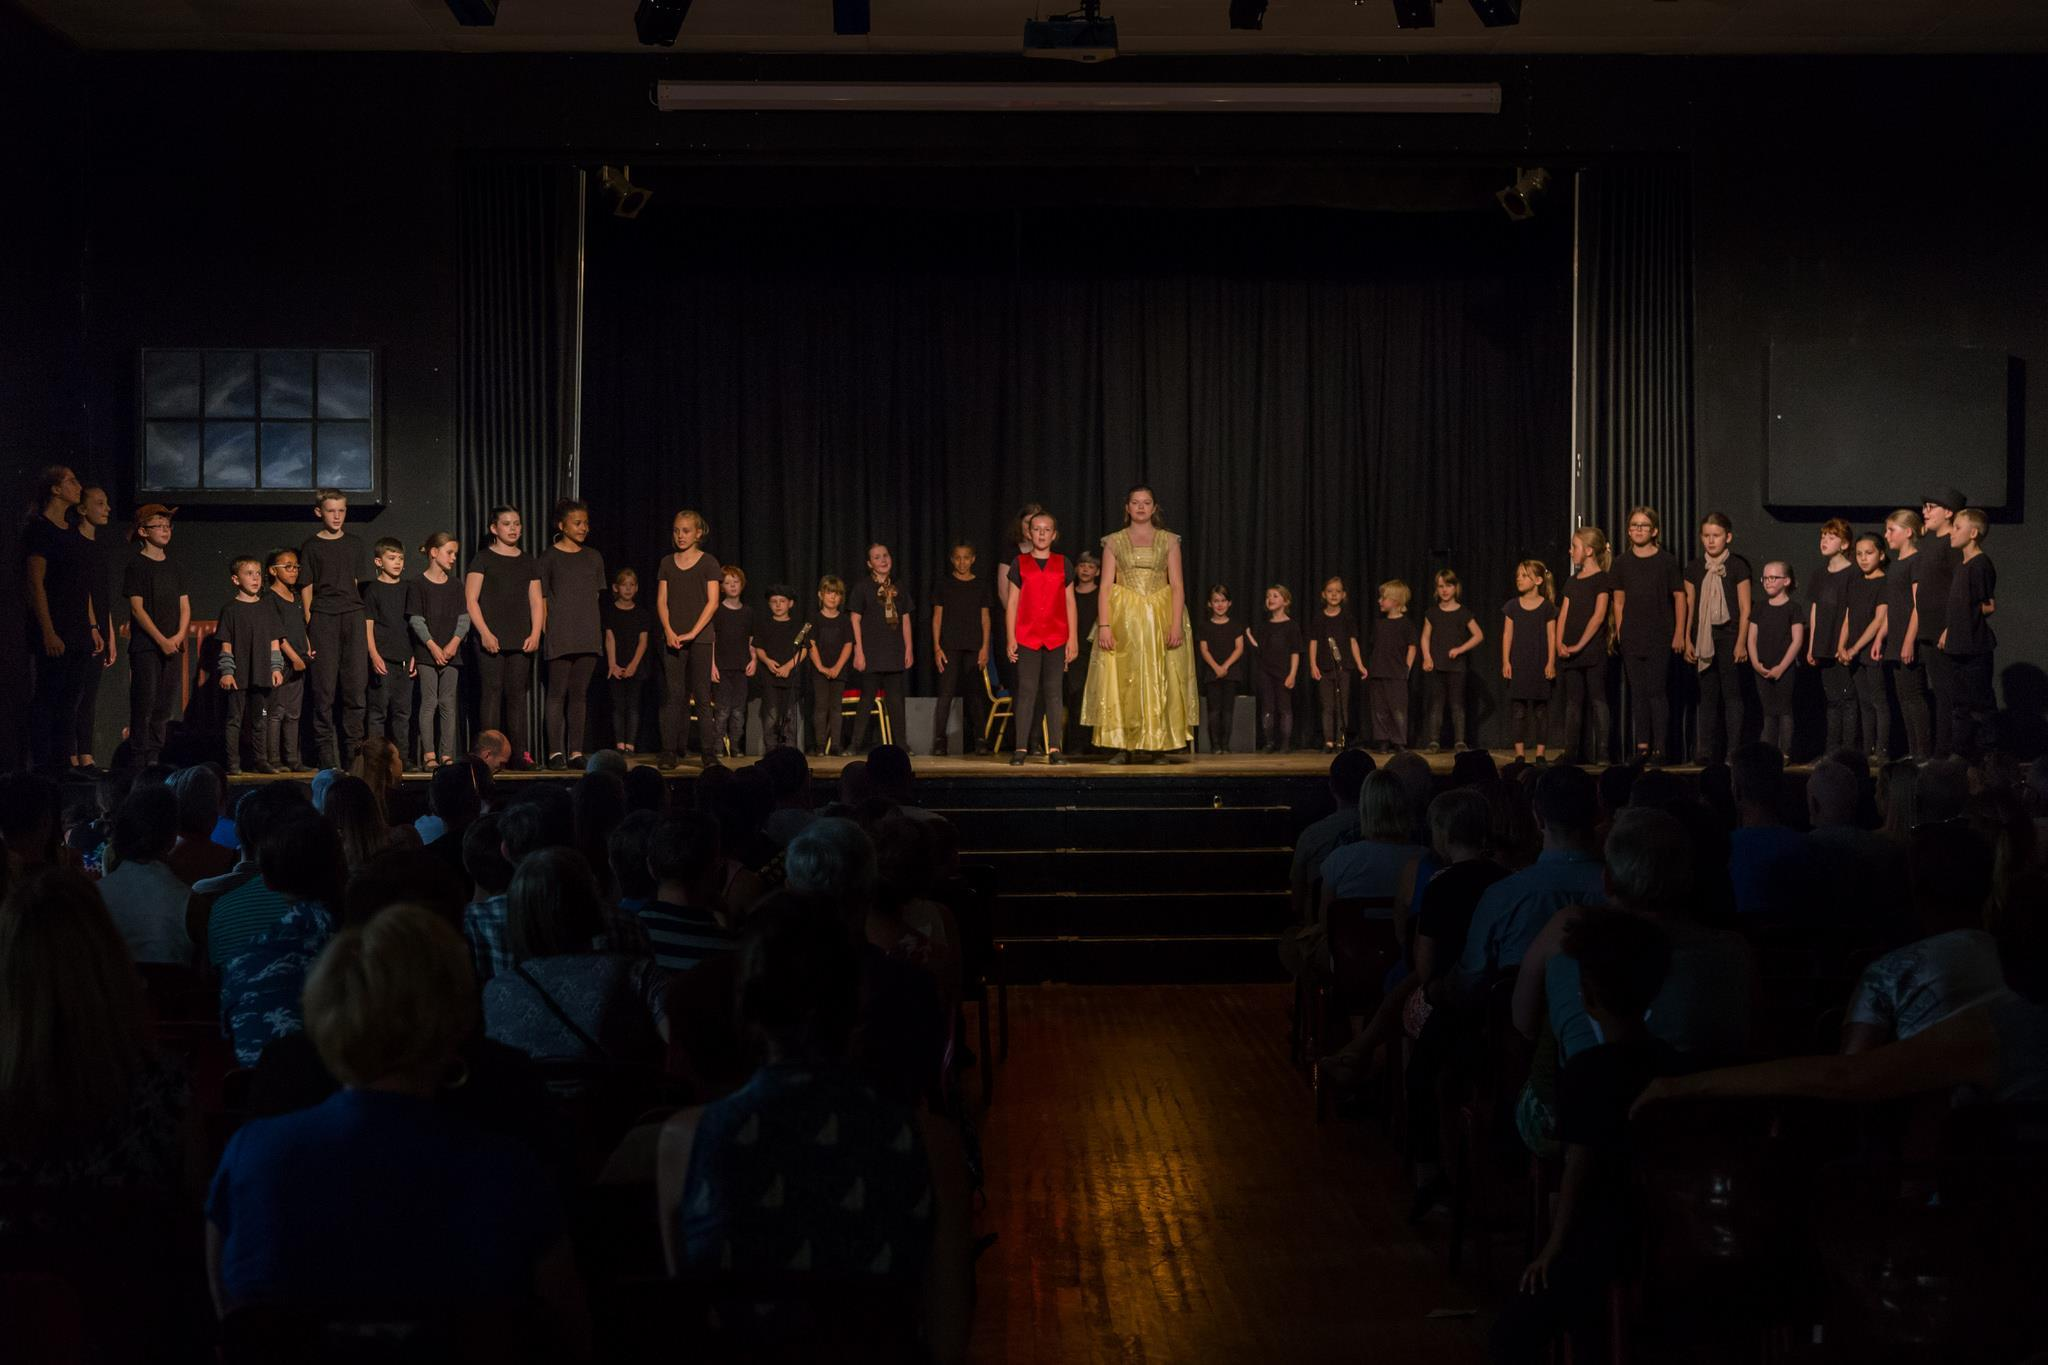 Stagecoach Performing Arts Bicester group performing Beauty and the Beast as a world record attempt June 2018